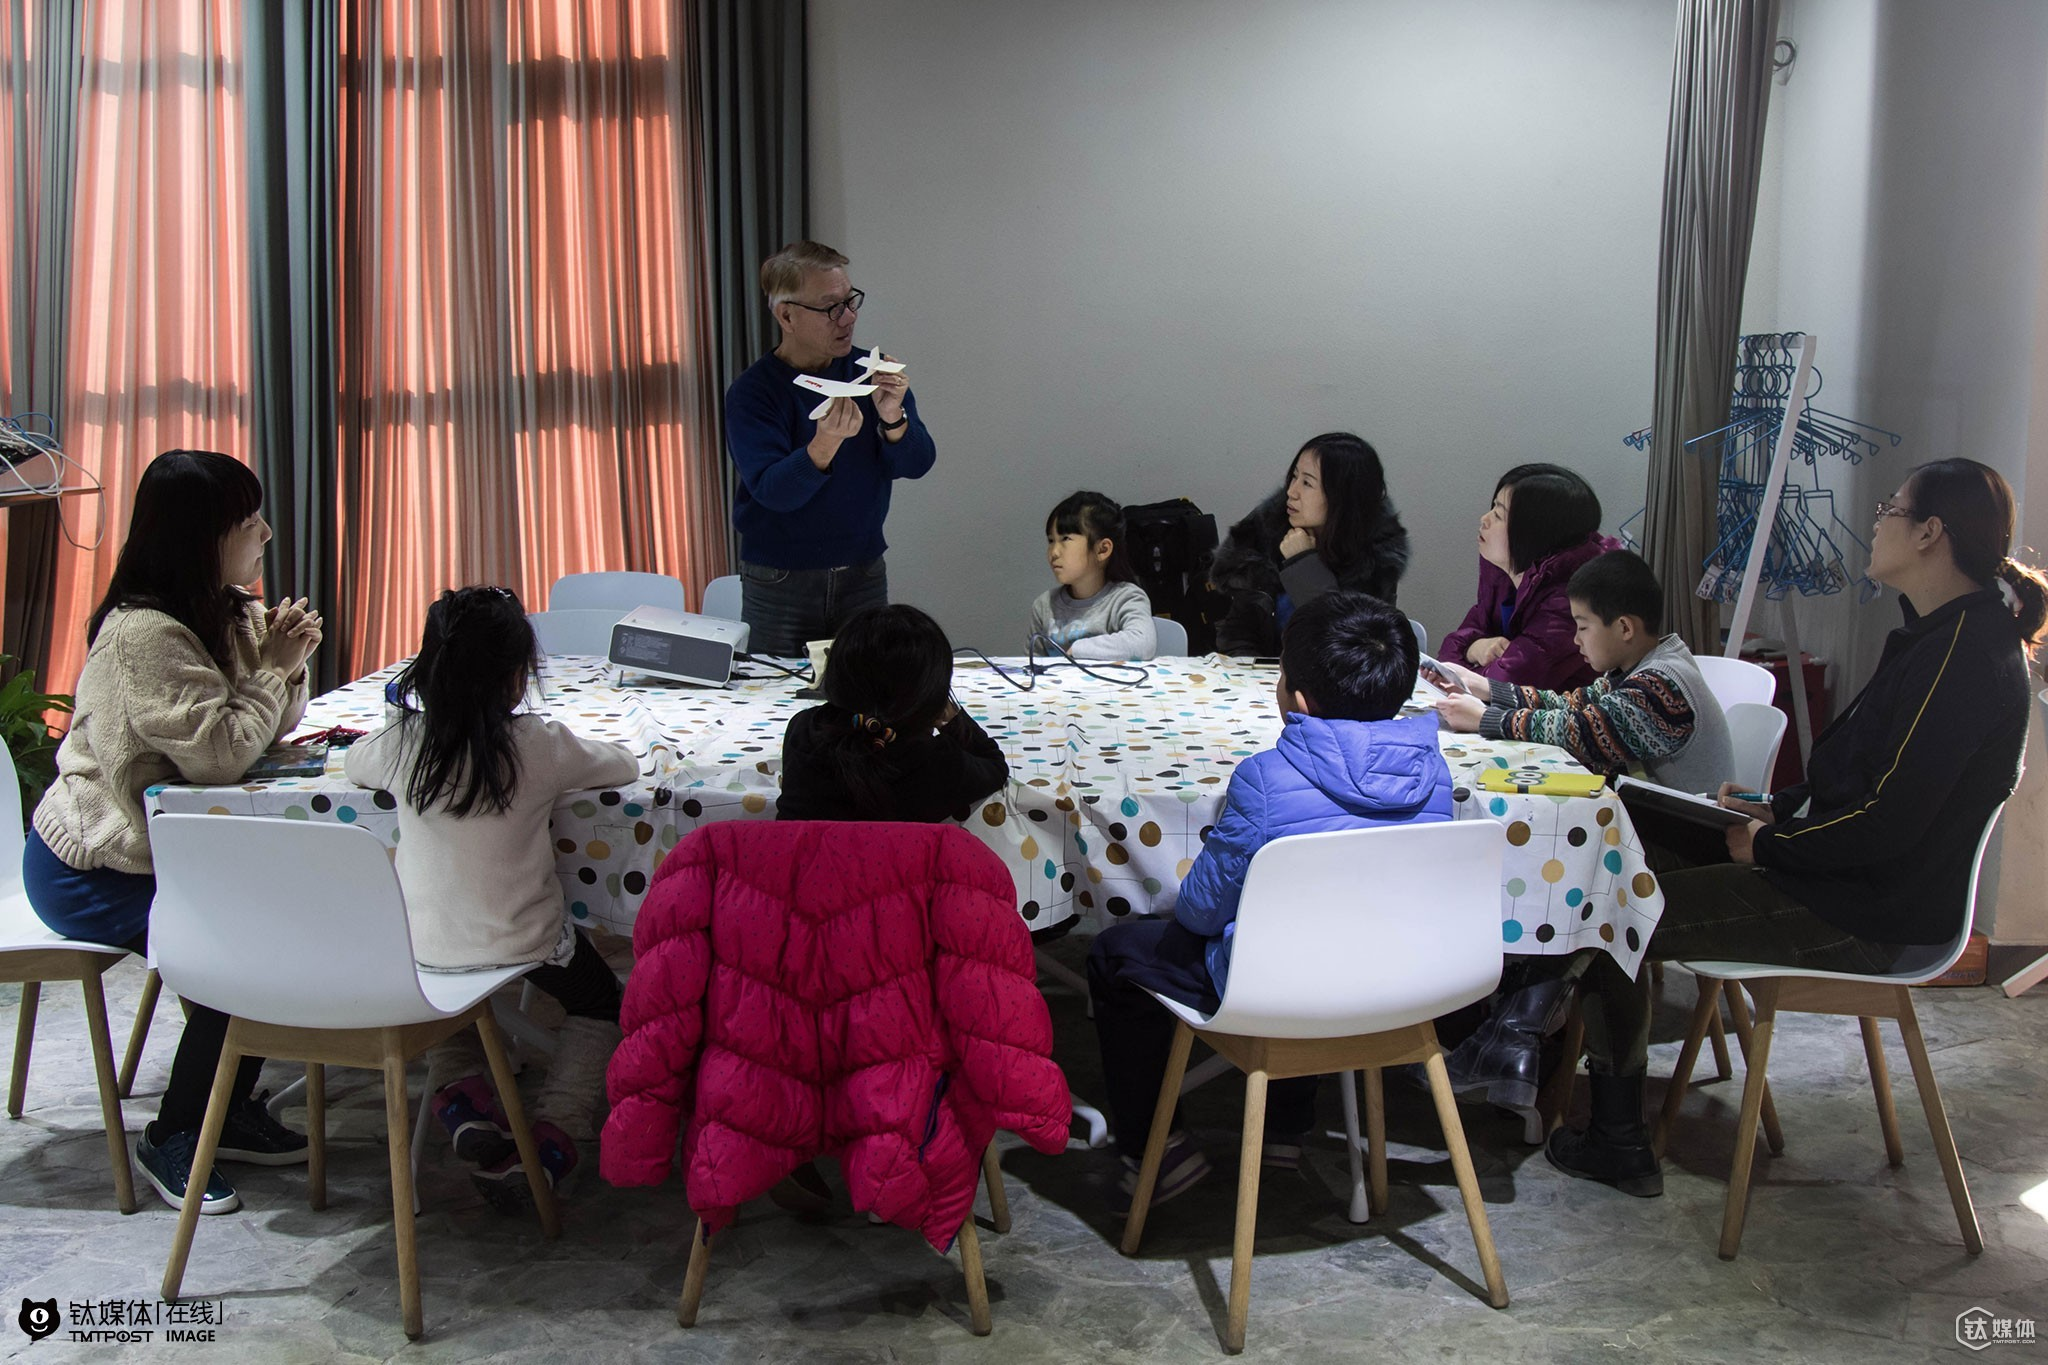 """January 19th 2016, Zheng Fude was teaching a parent-children airplane model making course at an early education center in Beijing. Zheng Ailing's profession was early education. When his father met its lowest point of his life, she encouraged him to teach local kids plane model making in Taoyuan. """"We did it for free for a month and then when we started to charge them for tuition fee we realized that these kids' families were quite poor,"""" Ailing and Fude were not sure if they should continue to teach plane model courses at that time. Though upset as he was, Zheng Fude persuaded Ailing to continue their business: """"Everyone of us has our own suffering and hardship. And since we have met each other, we should take our responsibilities and keep teaching them."""" Subsequently, they started to teach these kids for free. The kids gave Zheng Fude a nickname, Dr. Blue, for whenever they had questions about staff related to the sky, they could always ask Fude. And later after several visits to Beijing, Zheng Fude decided to bring his courses and his airplane models 35 years in the making to this capital city of China. Zheng believed that in Beijing he could once again achieve his own value."""